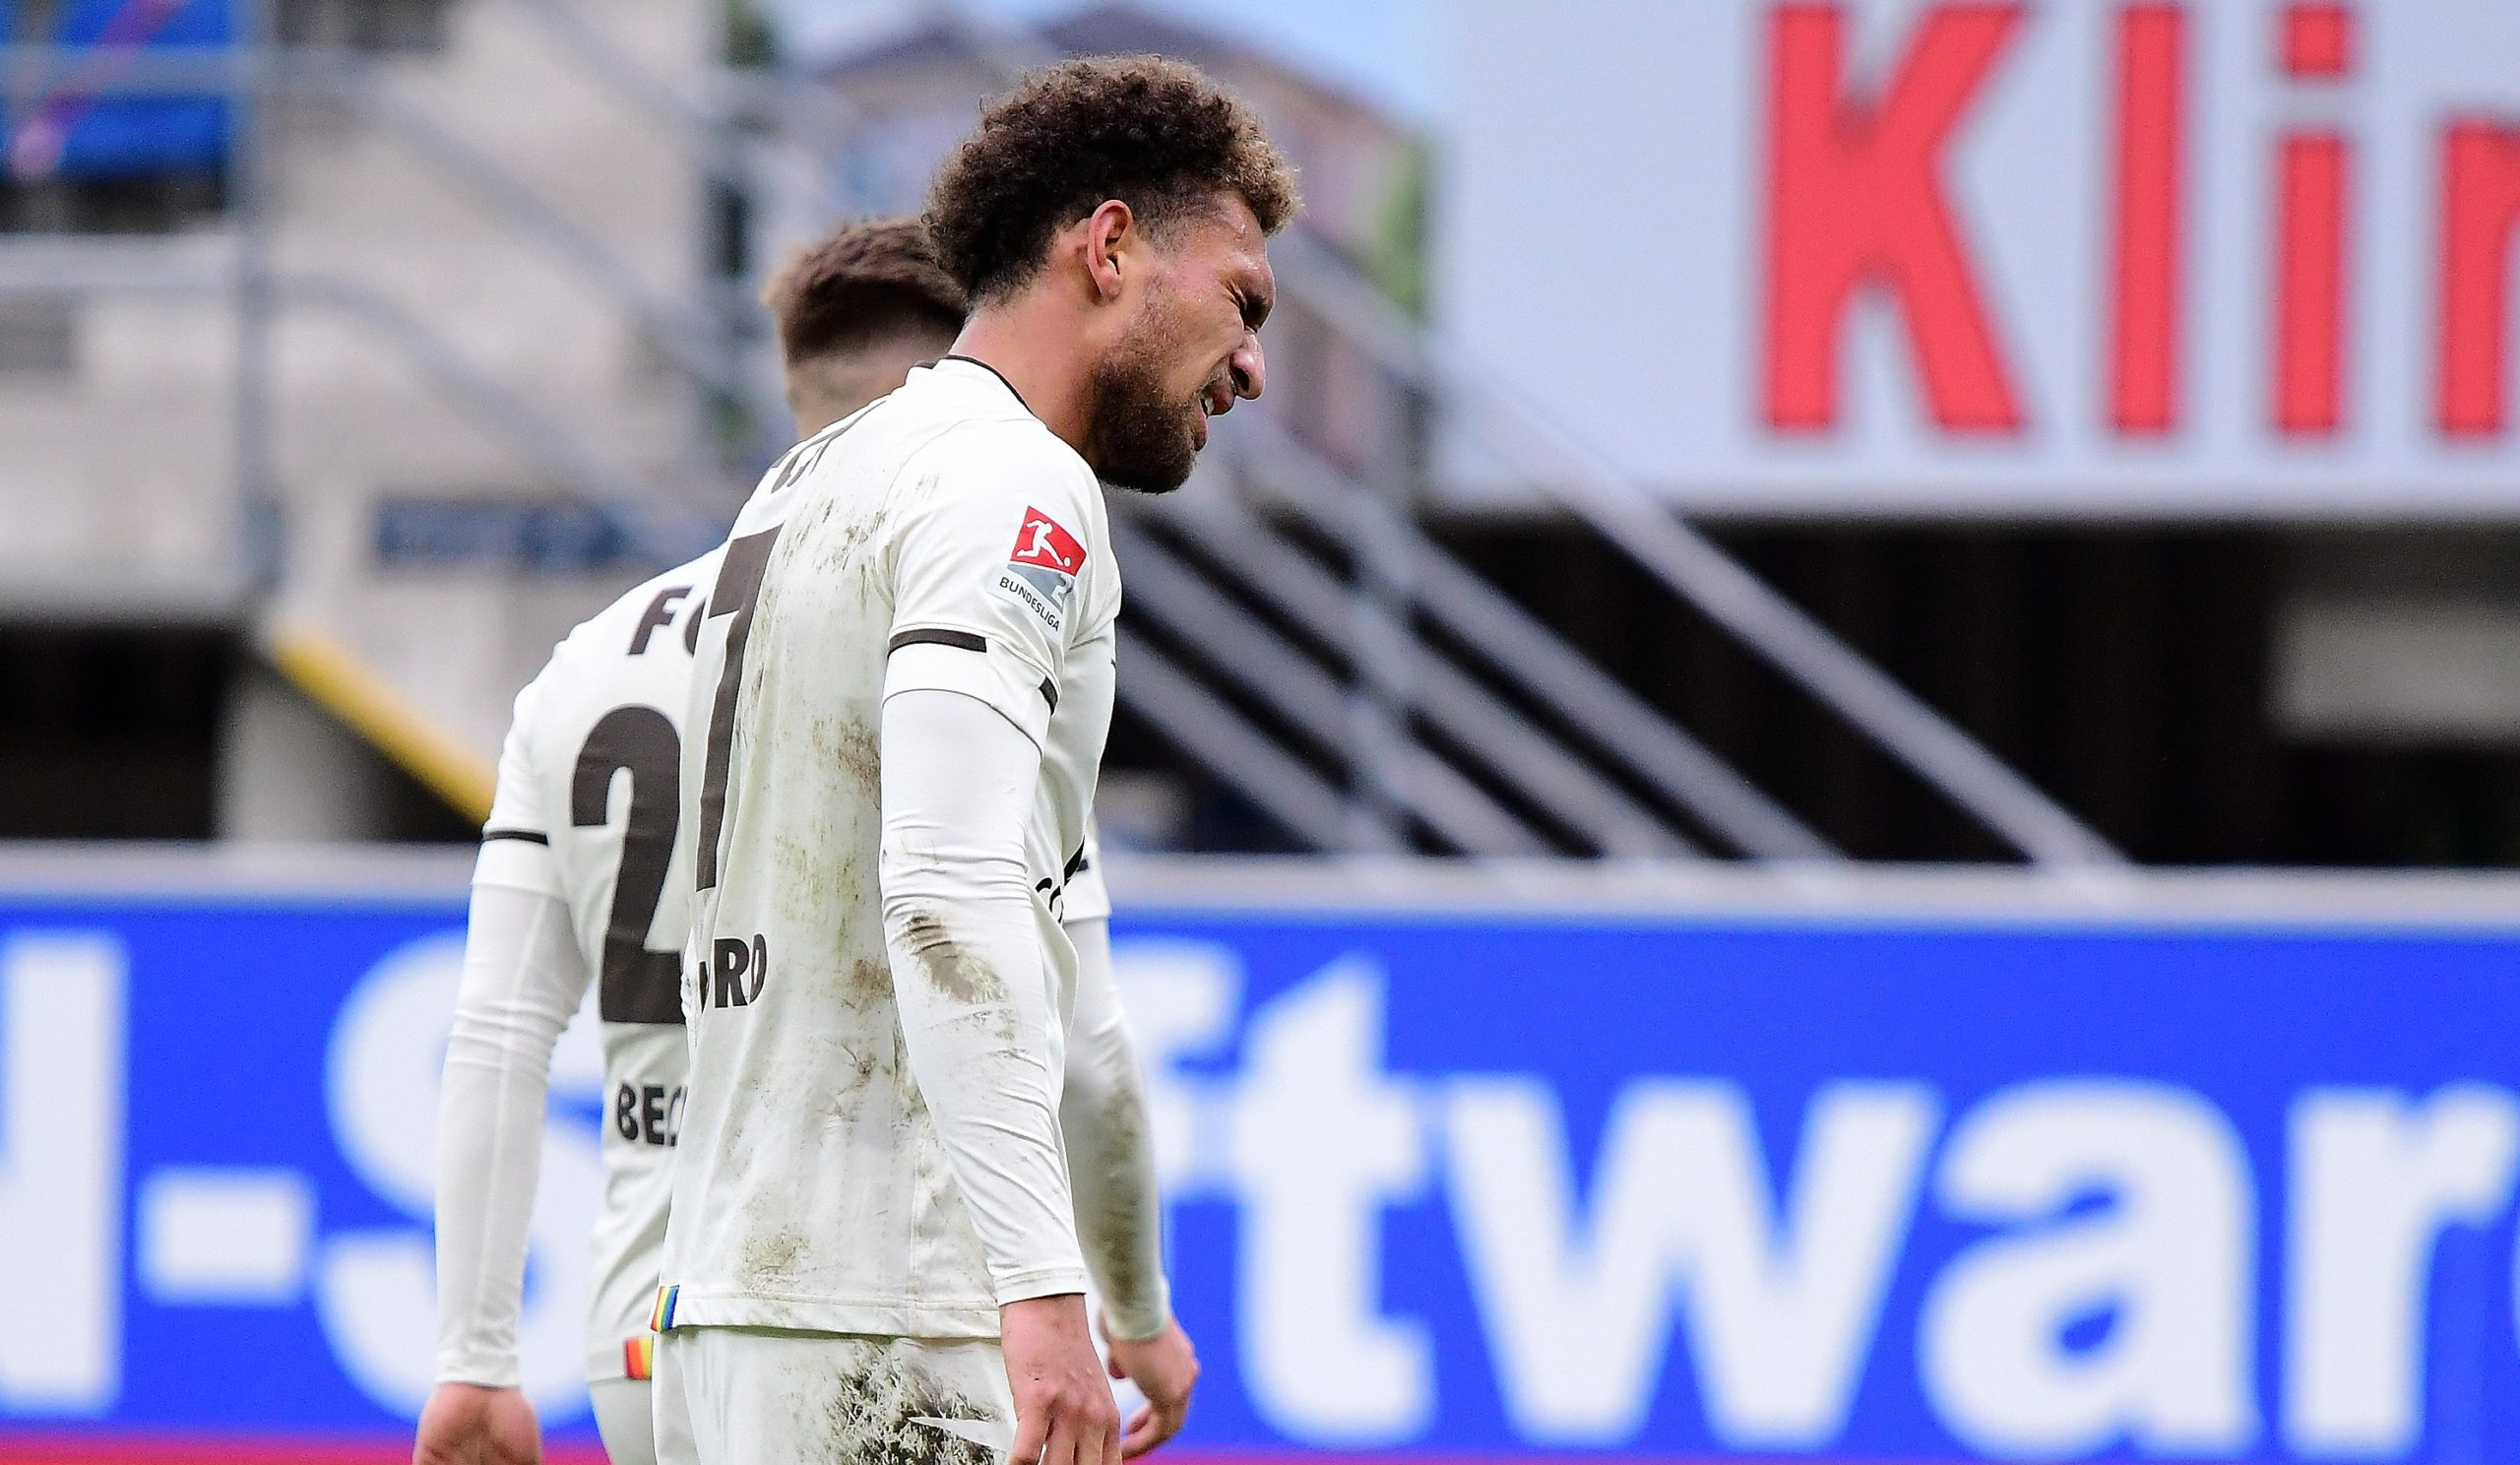 SC Paderborn – FC St. Pauli 2:0 – Shite at, in and on the foot!